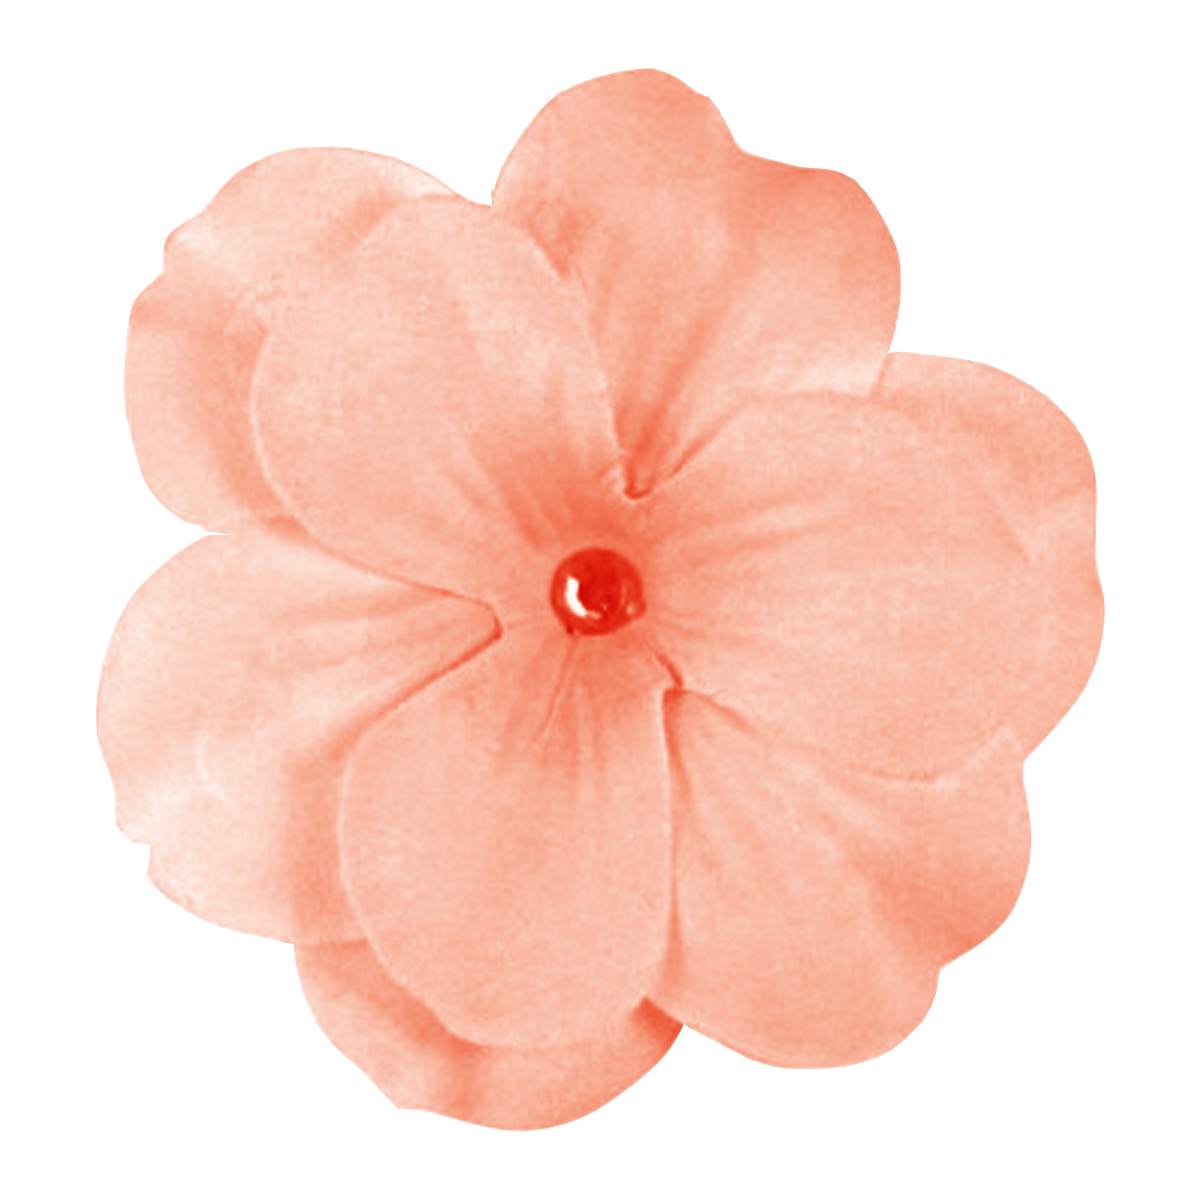 Peach flowers png. Index of image download